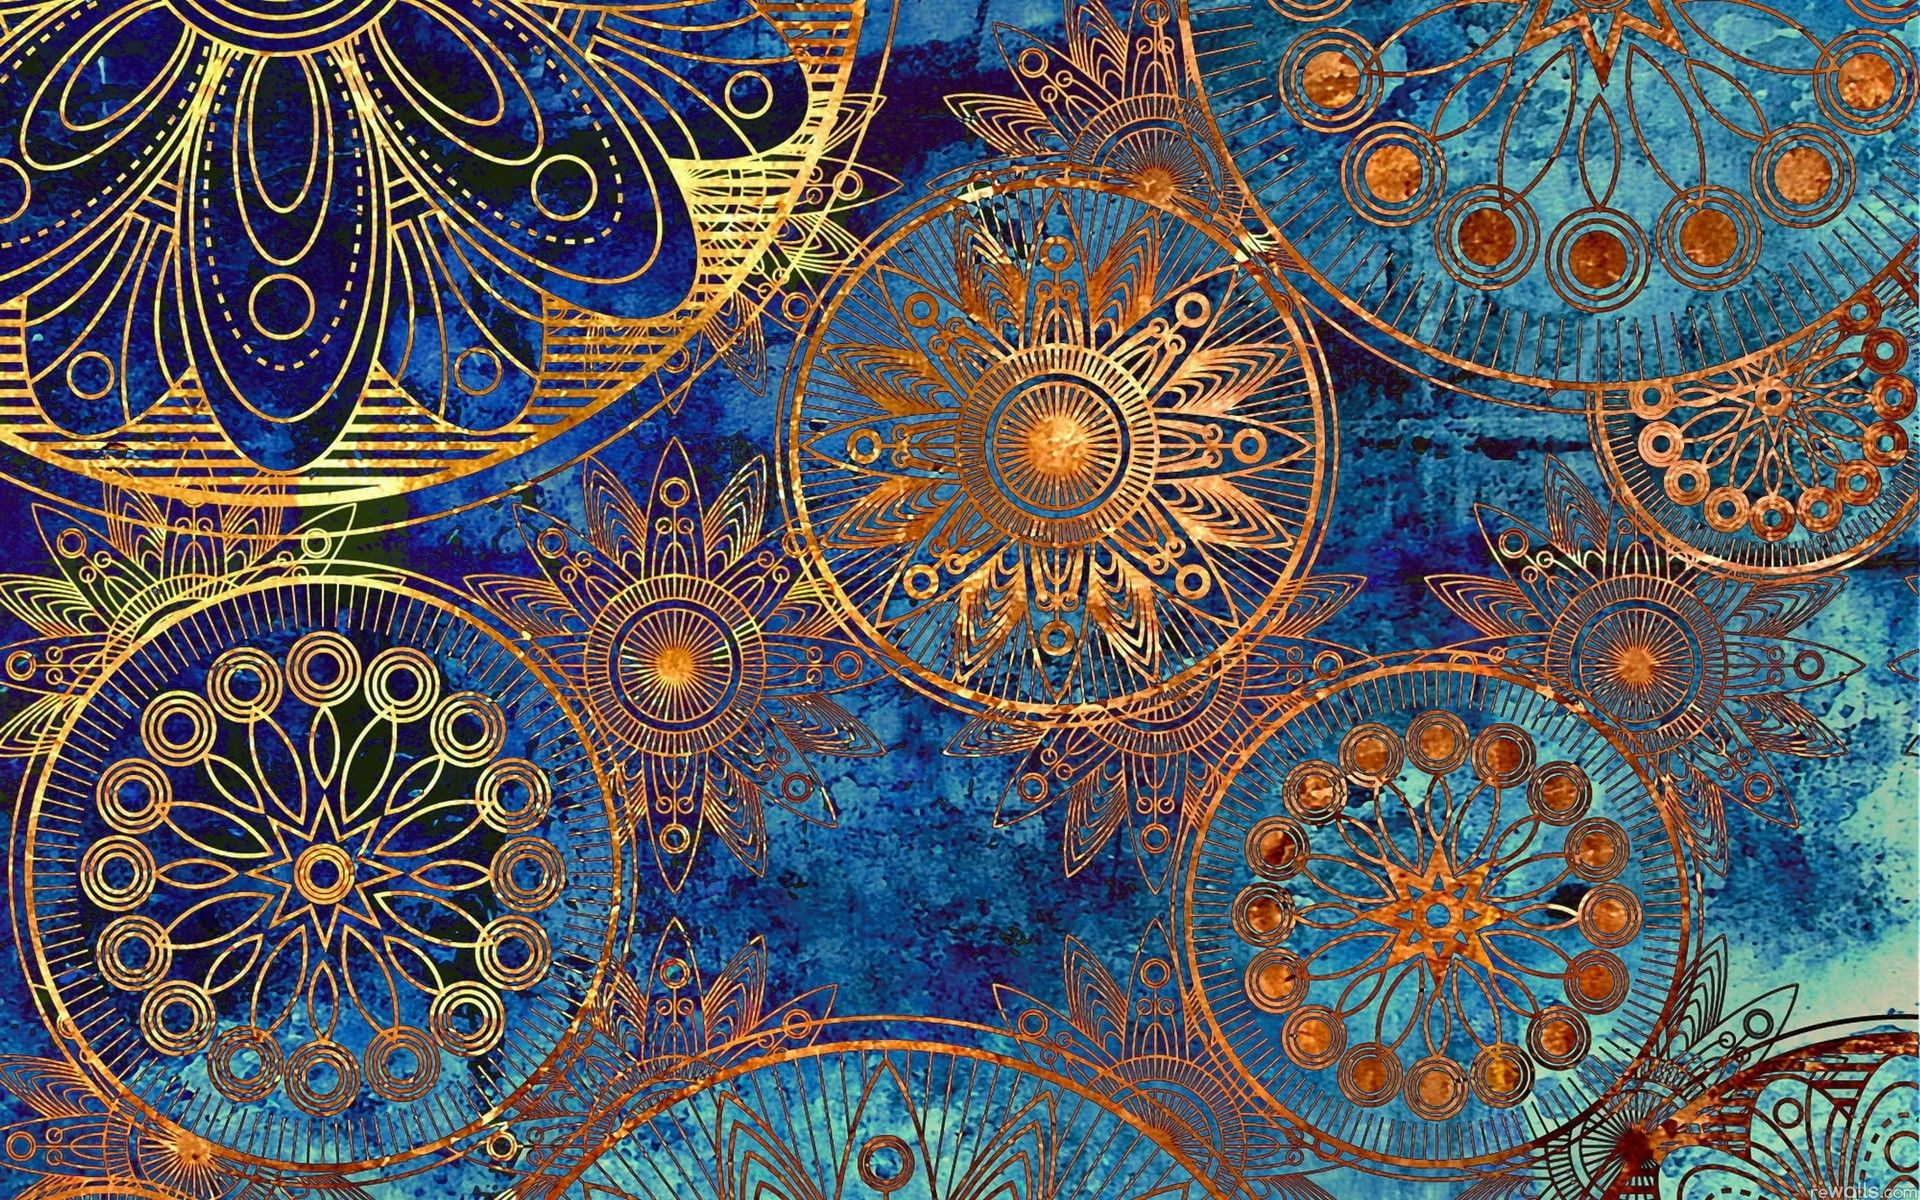 Res: 1920x1200, Absolutely {heart} this Blue & Gold Vintage Pattern Desktop Wallpaper.